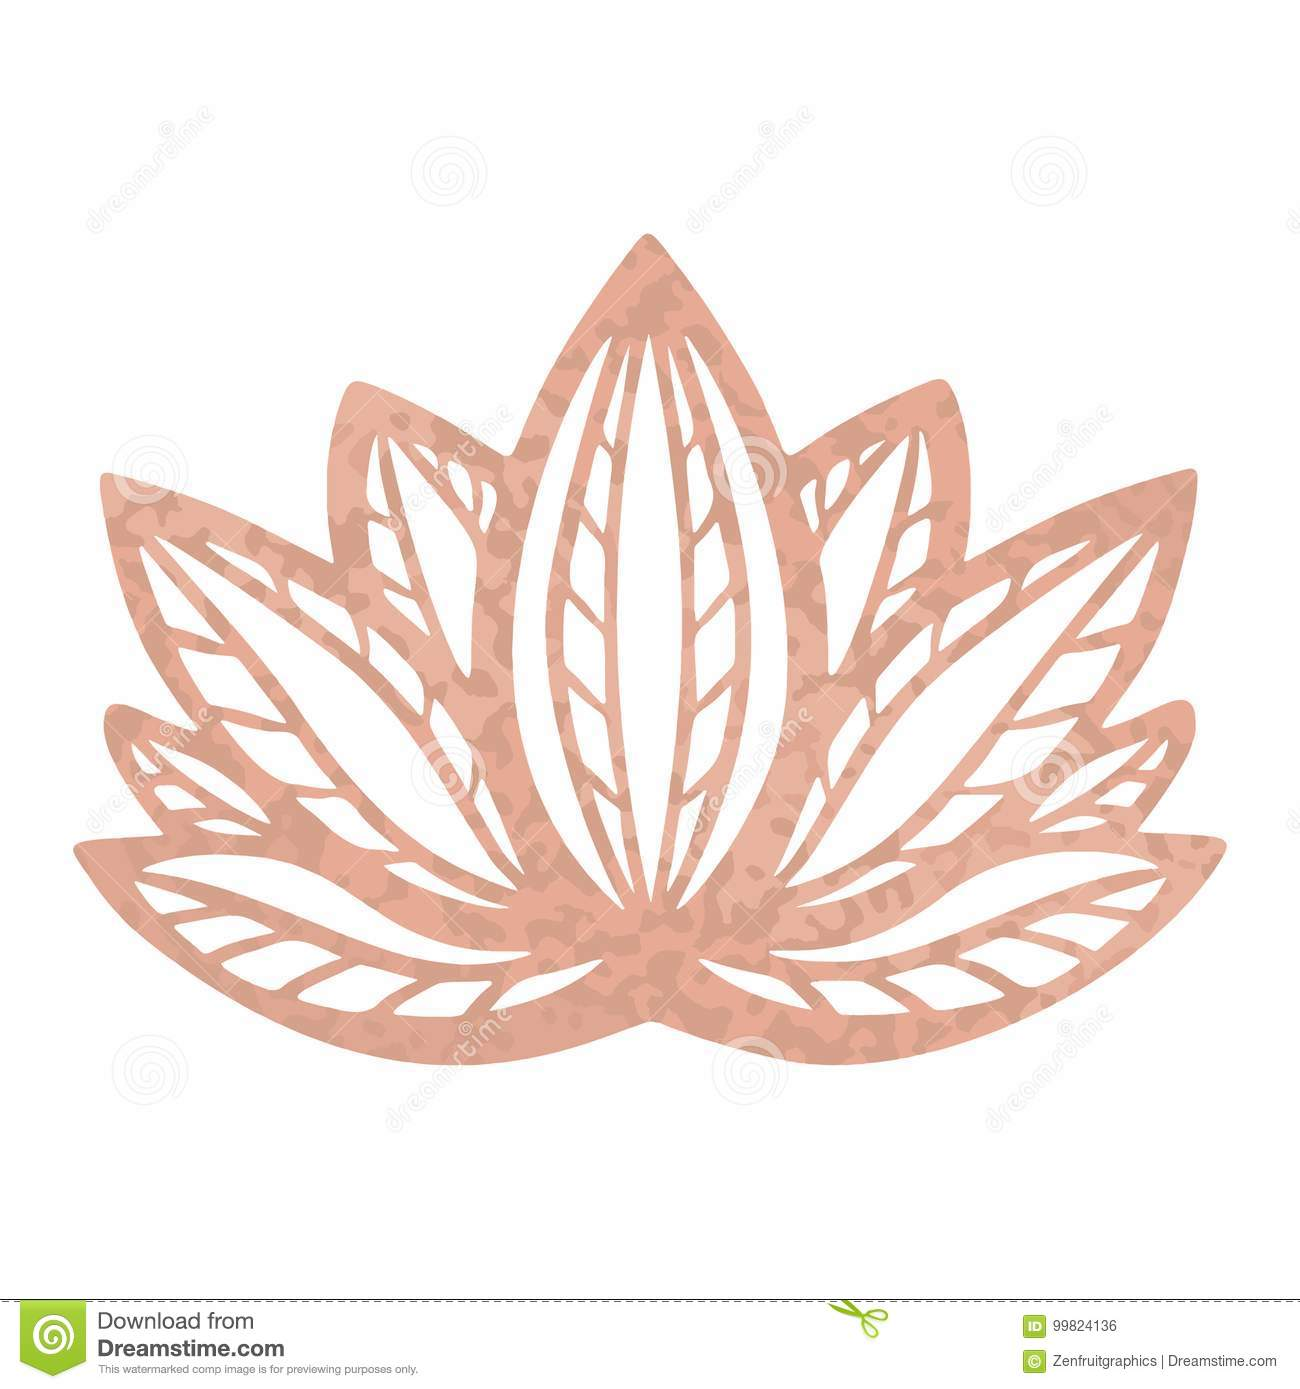 Texture Metallique De Feuille D Or De Rose De Tatouage Conception